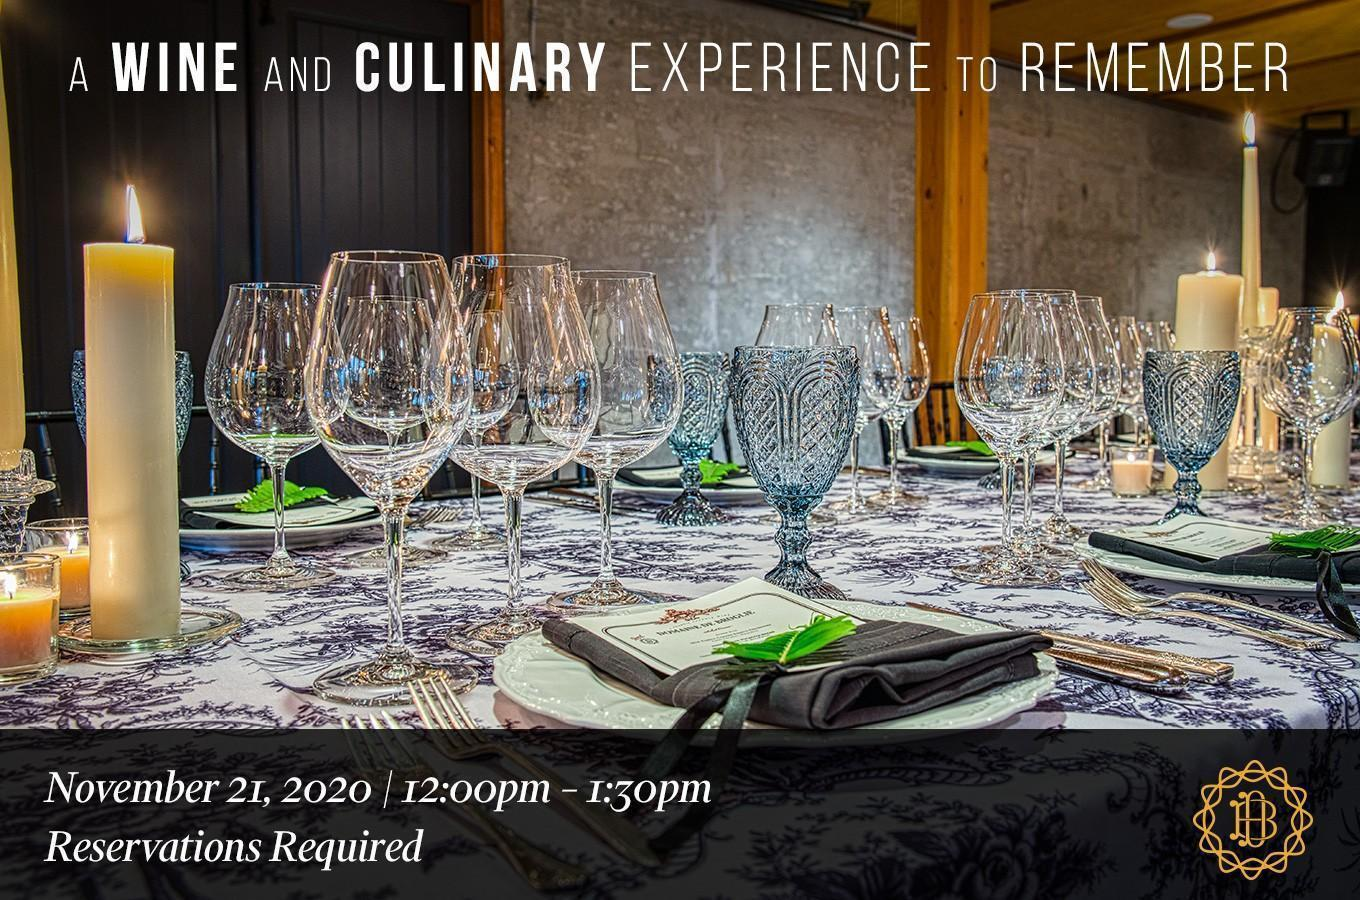 wine culinary exp dChkNL.tmp  - Wine & Culinary Experience